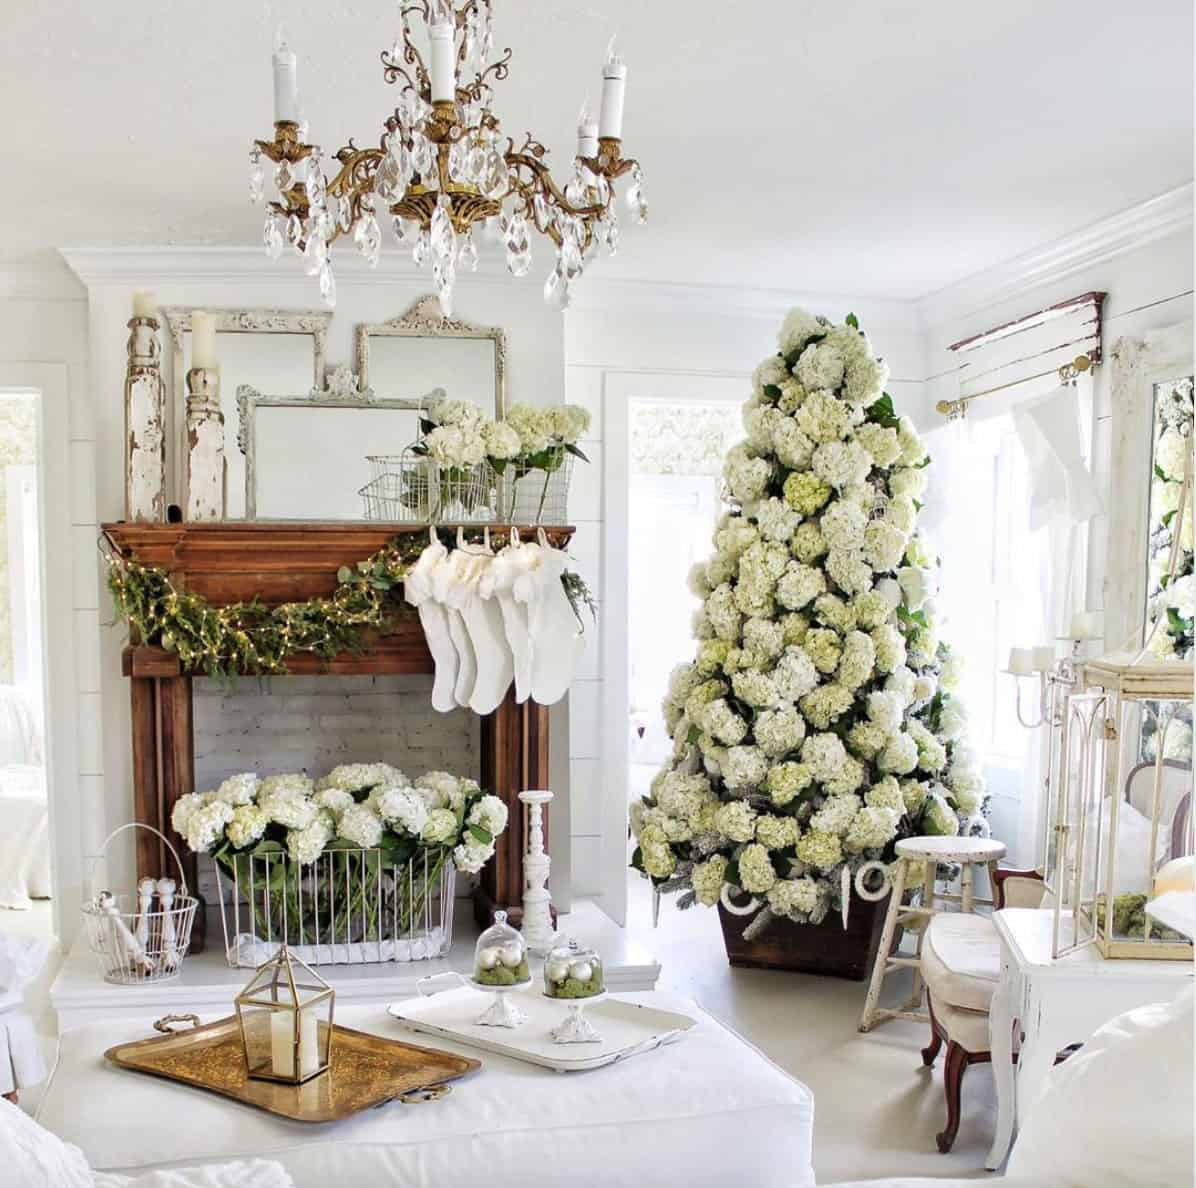 15 Beautifully Decorated Wintry Rustic Christmas Tree Ideas